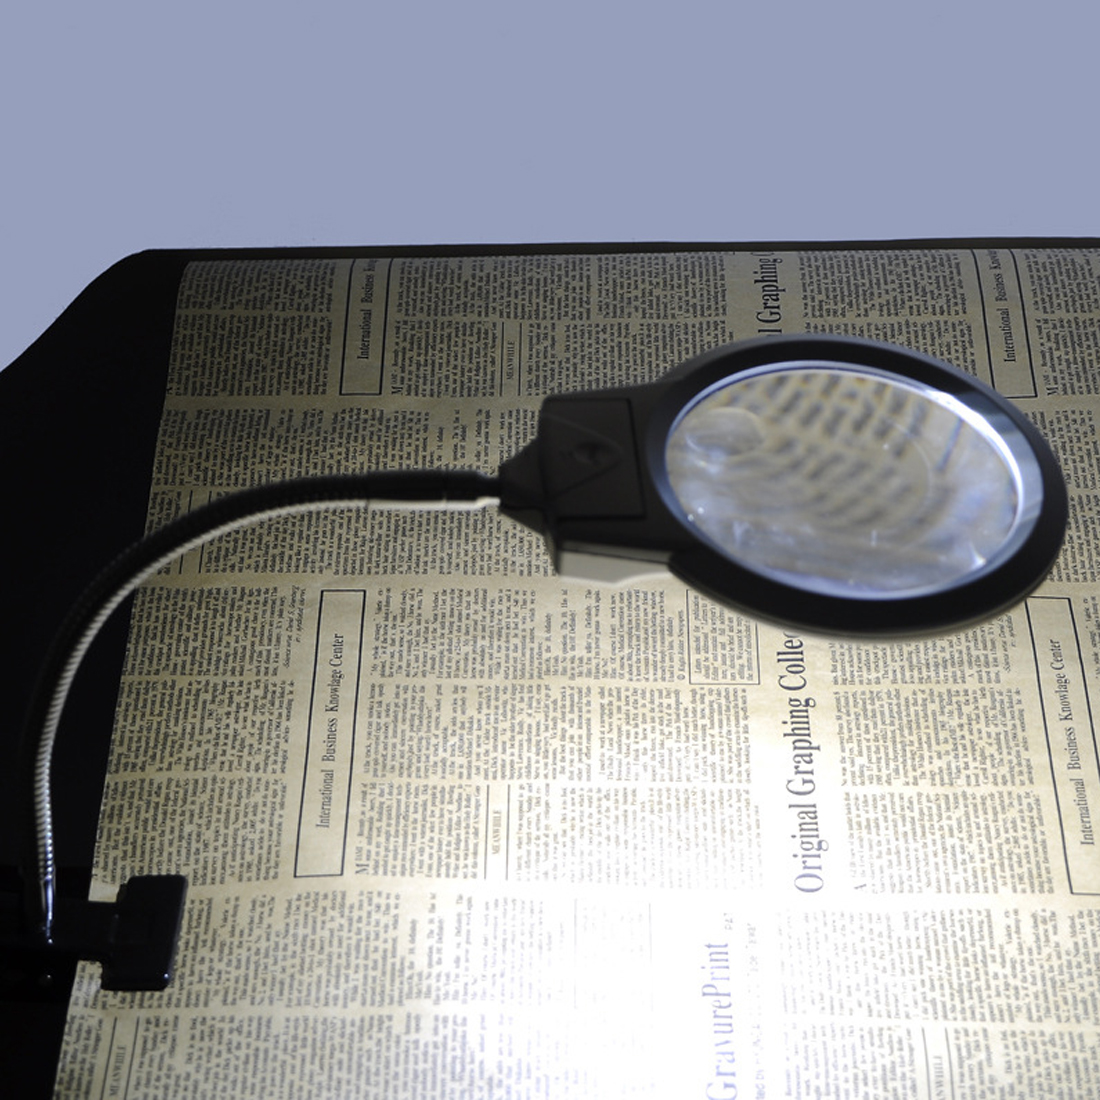 LED Illuminating Magnifier 2.5X 107MM 5X 24MM Metal Hose Magnifying Glass Desk Table Reading Lamp Light with Clamp